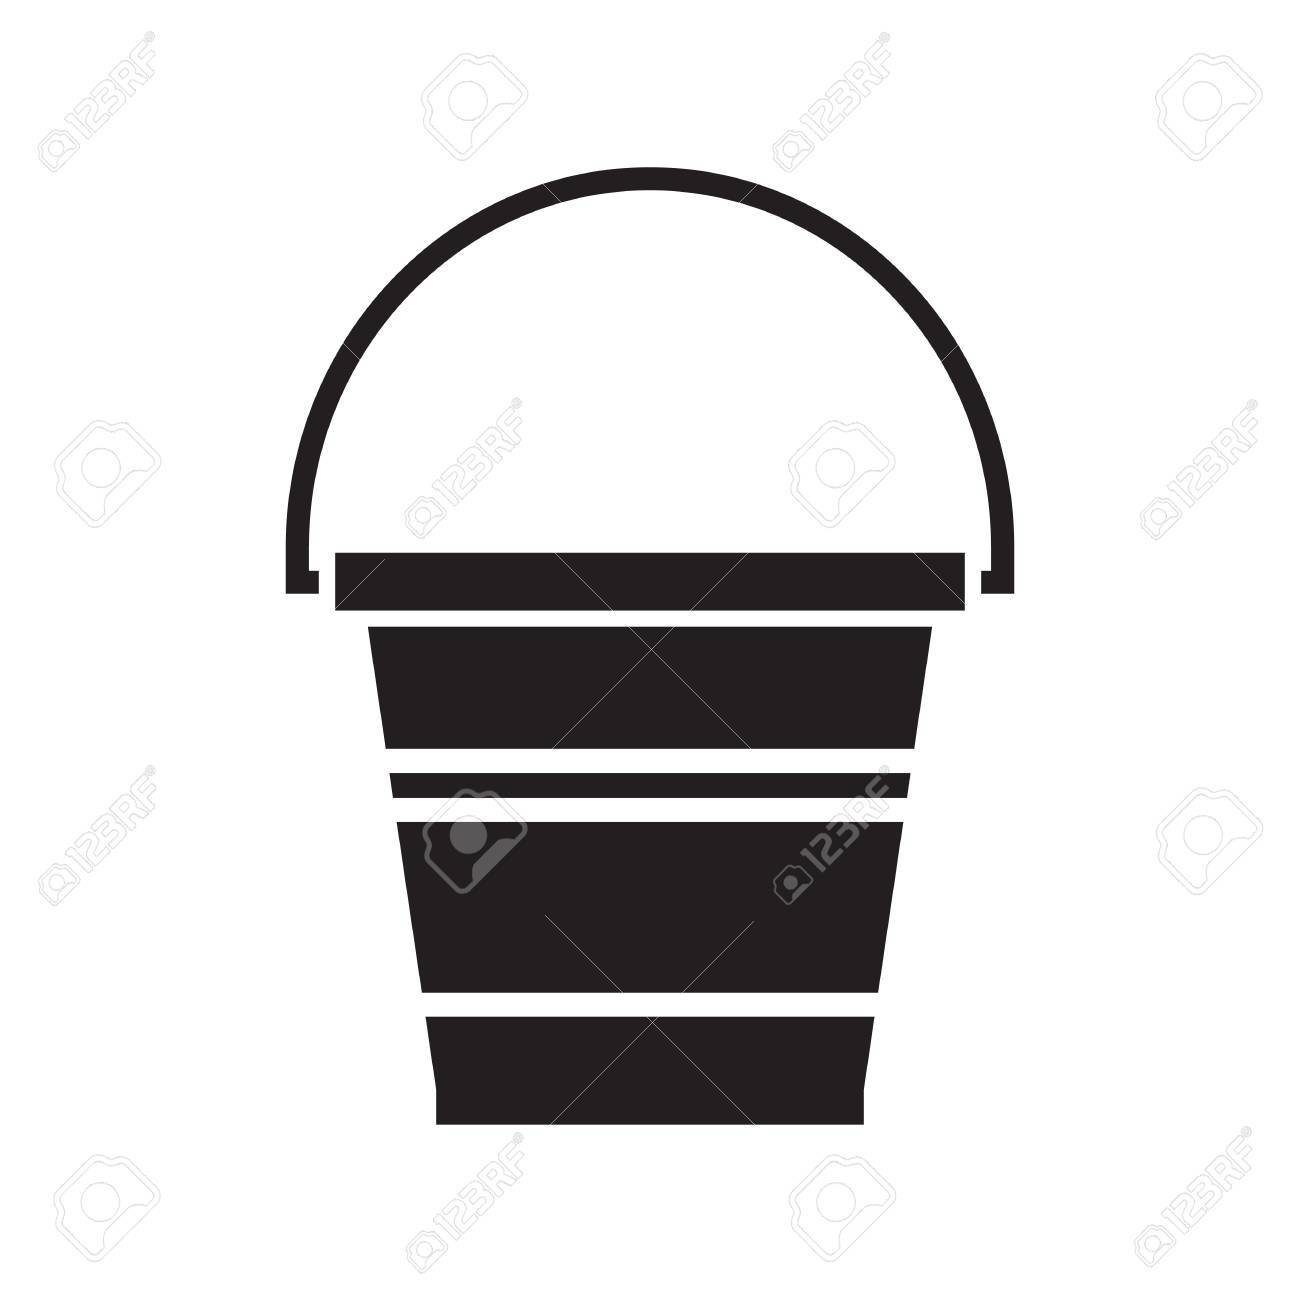 Garden Bucket Outline Icon. Water Pail Metal Container Silhouette For  Gardening Or Housework. Stock